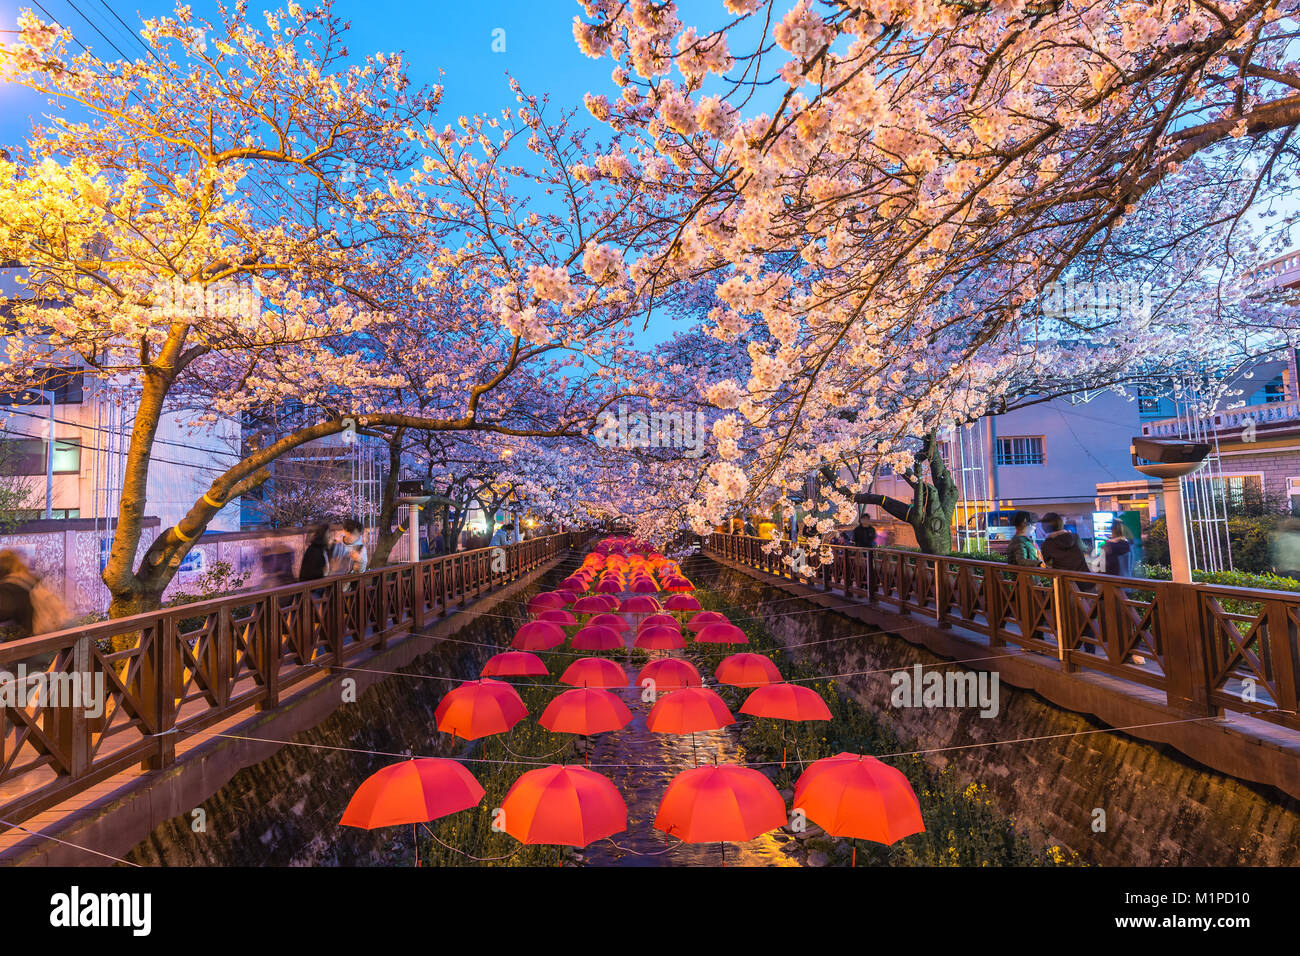 Spring Cherry Blossom Festival à Yeojwacheon Stream la nuit, Jinhae, Corée du Sud Photo Stock